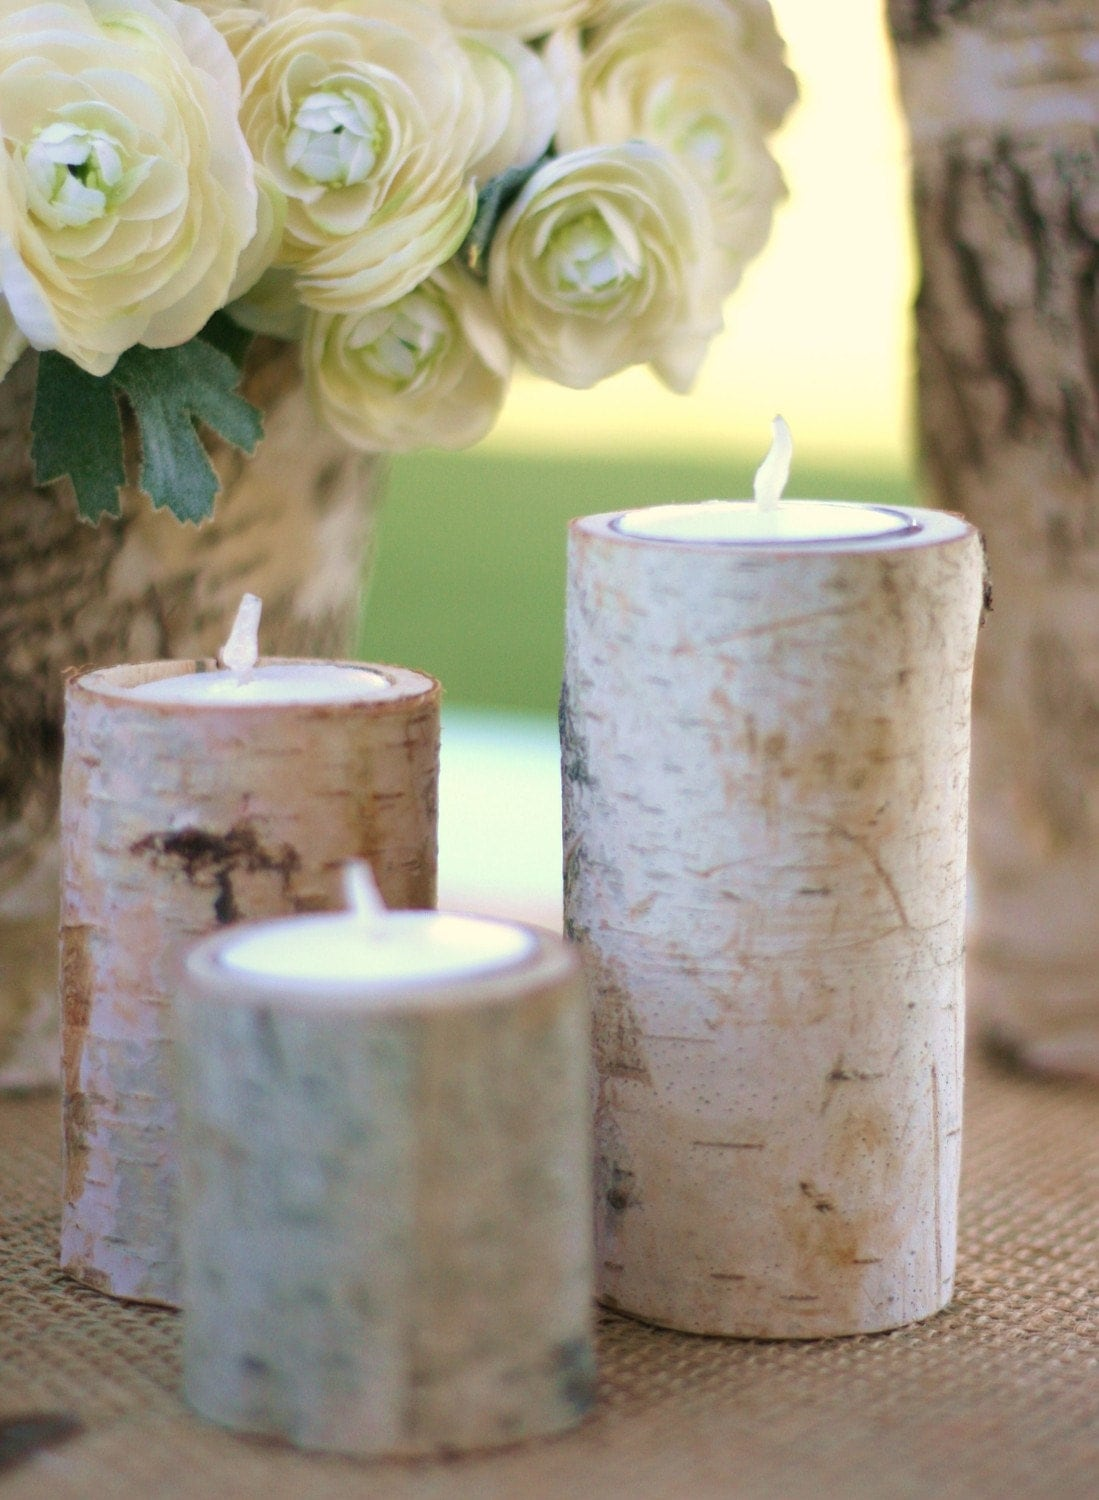 24 Centerpiece Natural Eco Friendly Birch Bark Log Votive Tea Light Candle Holders Rustic Woodland Spring Summer Garden Wedding Decorations Shabby Chic Vintage Bride